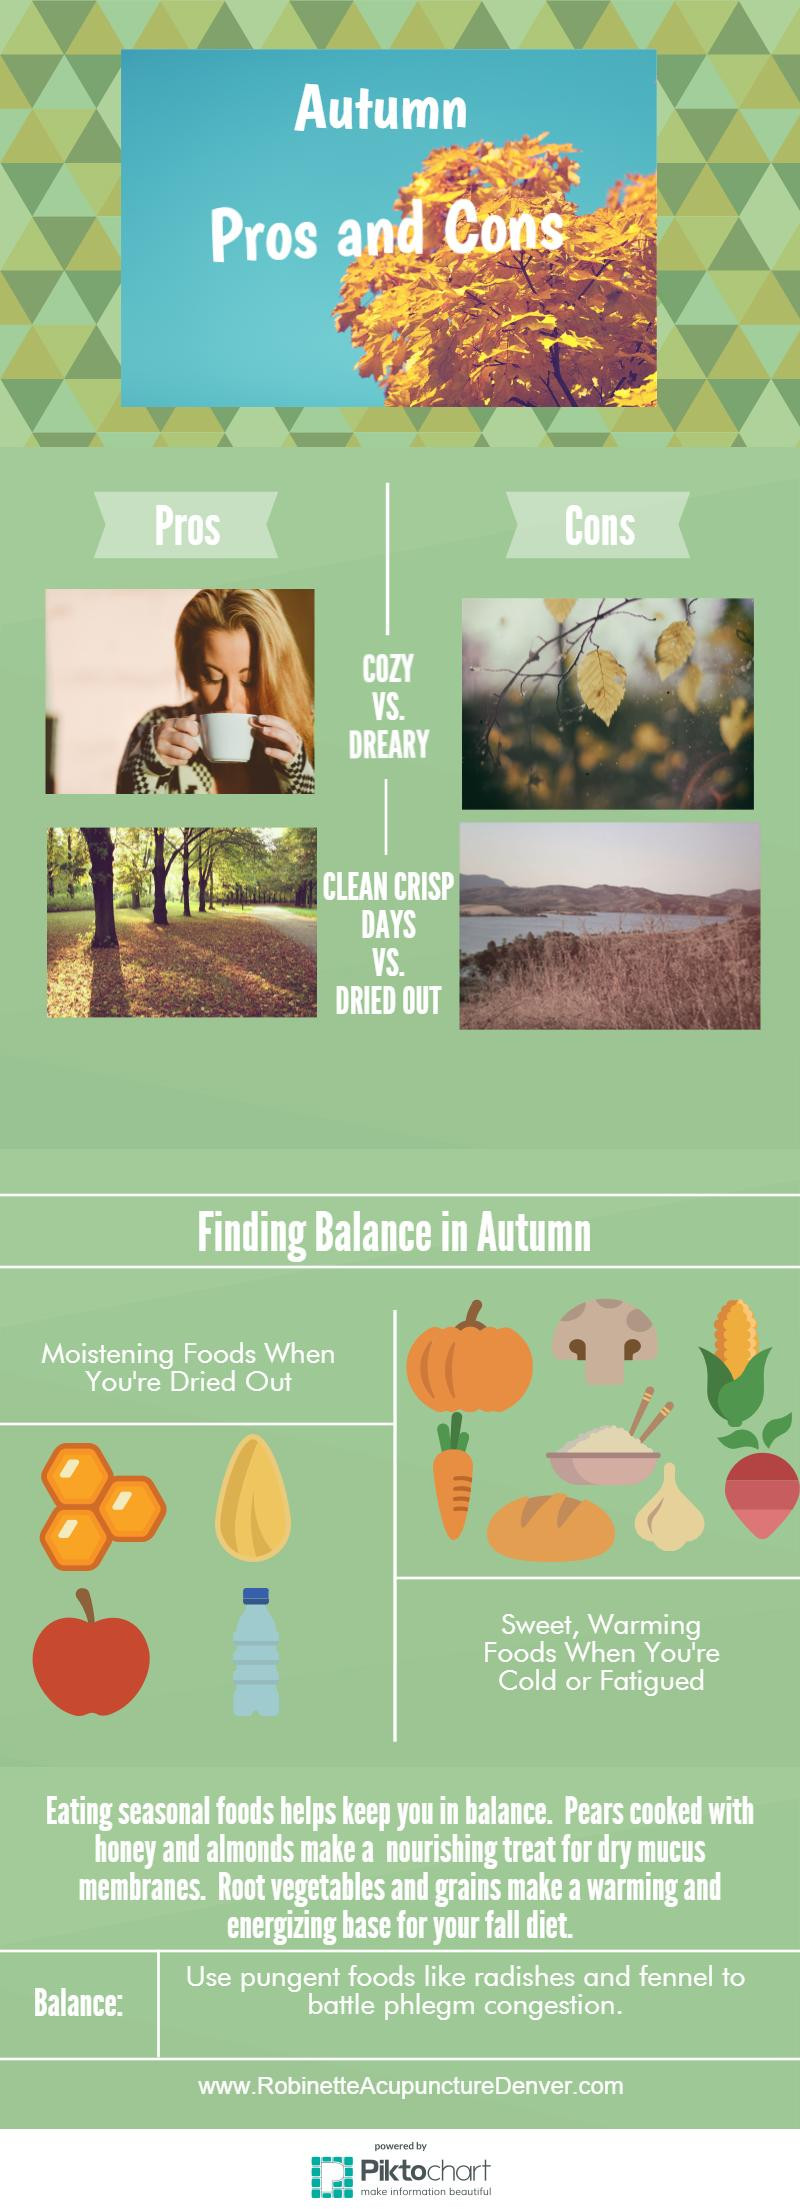 Enjoy the best fall has to offer, and use seasonal foods to stay healthy!